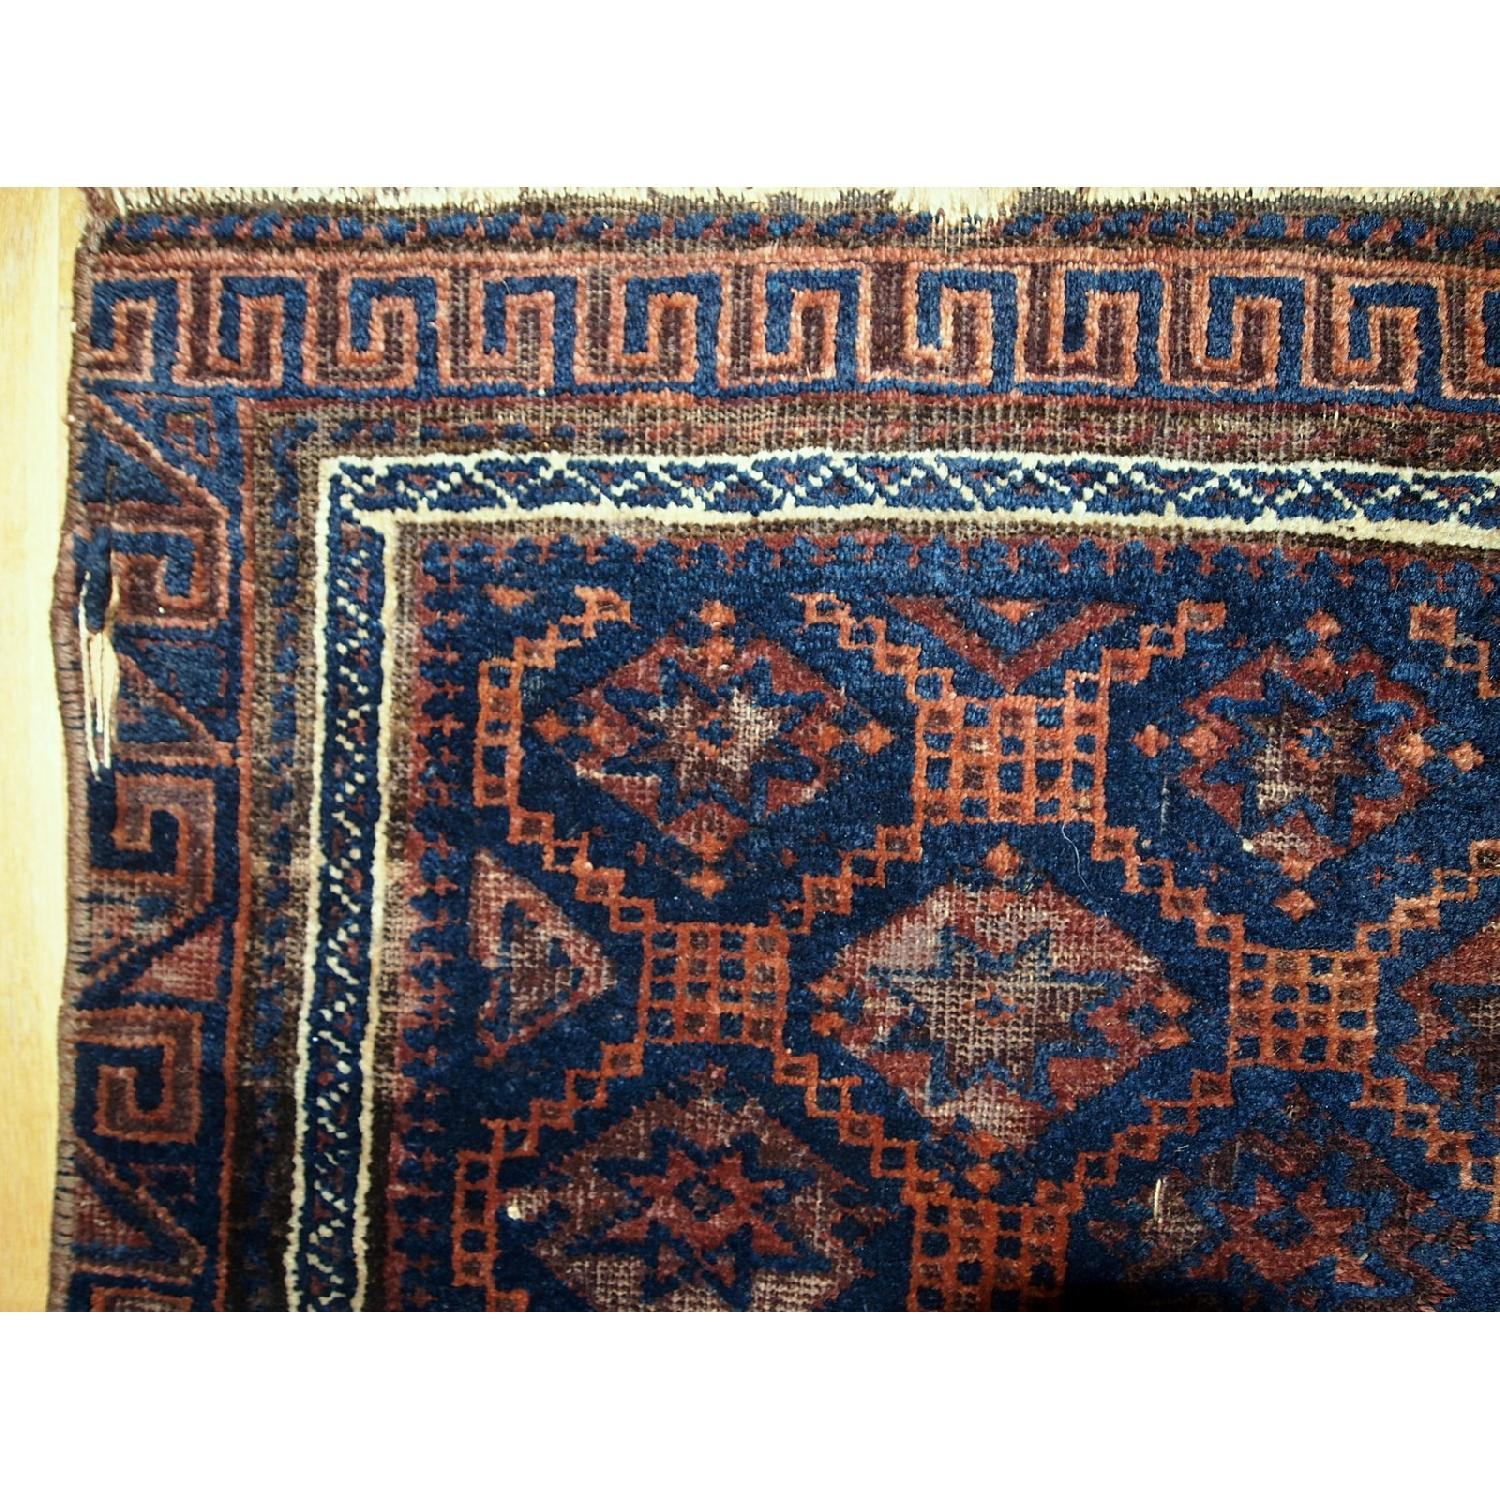 Antique Handmade Collectible Afghan Baluch Bag Face Rug - image-8